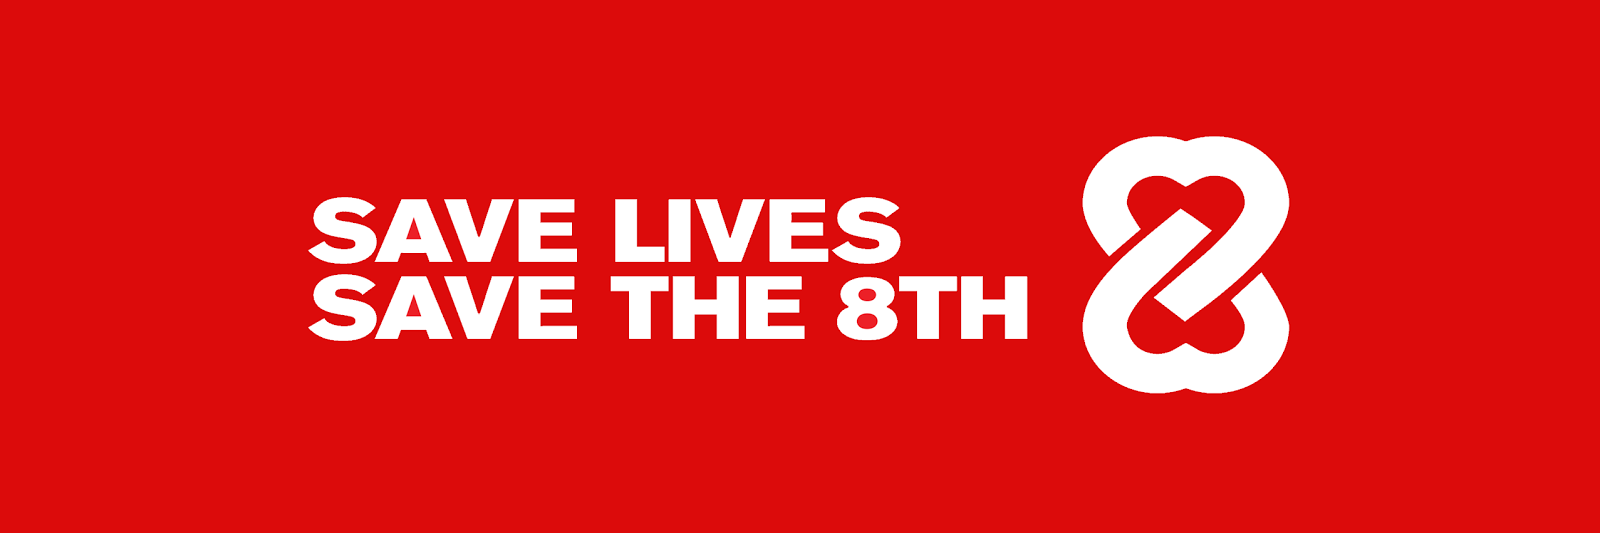 Save Lives! Save the 8th!